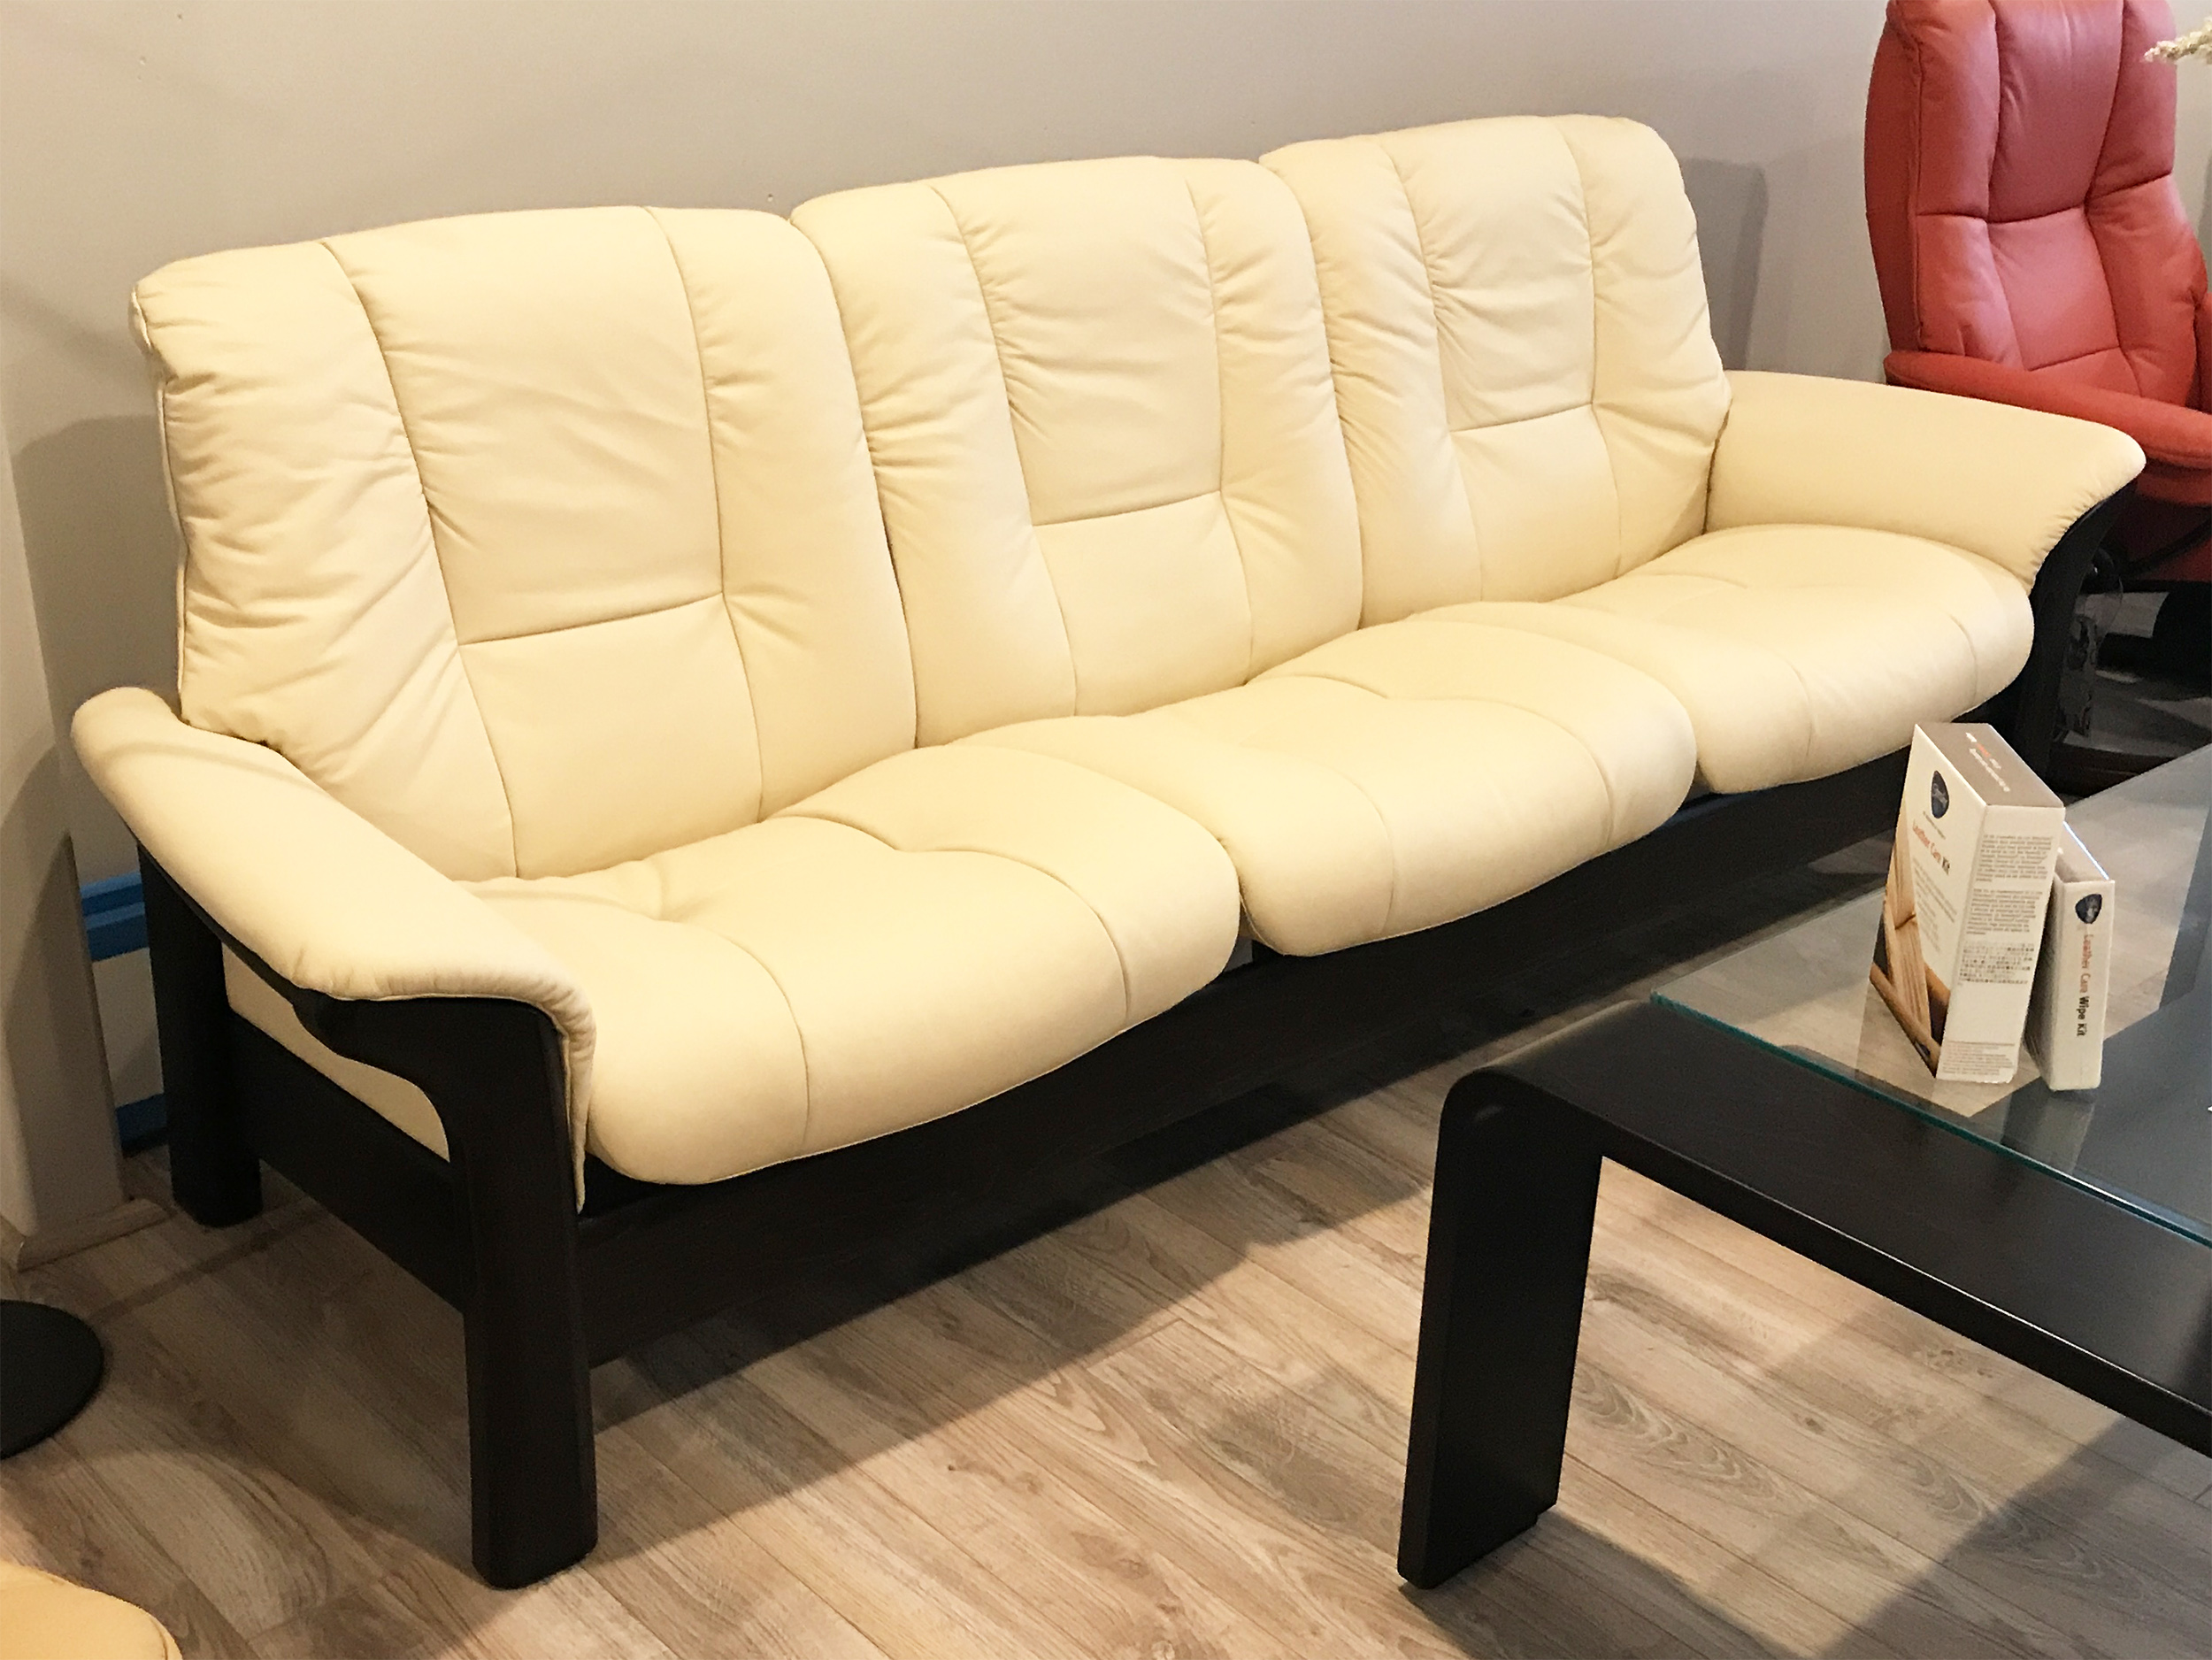 stressless buckingham 3 seat low back sofa batick cream color leather by ekornes. Black Bedroom Furniture Sets. Home Design Ideas